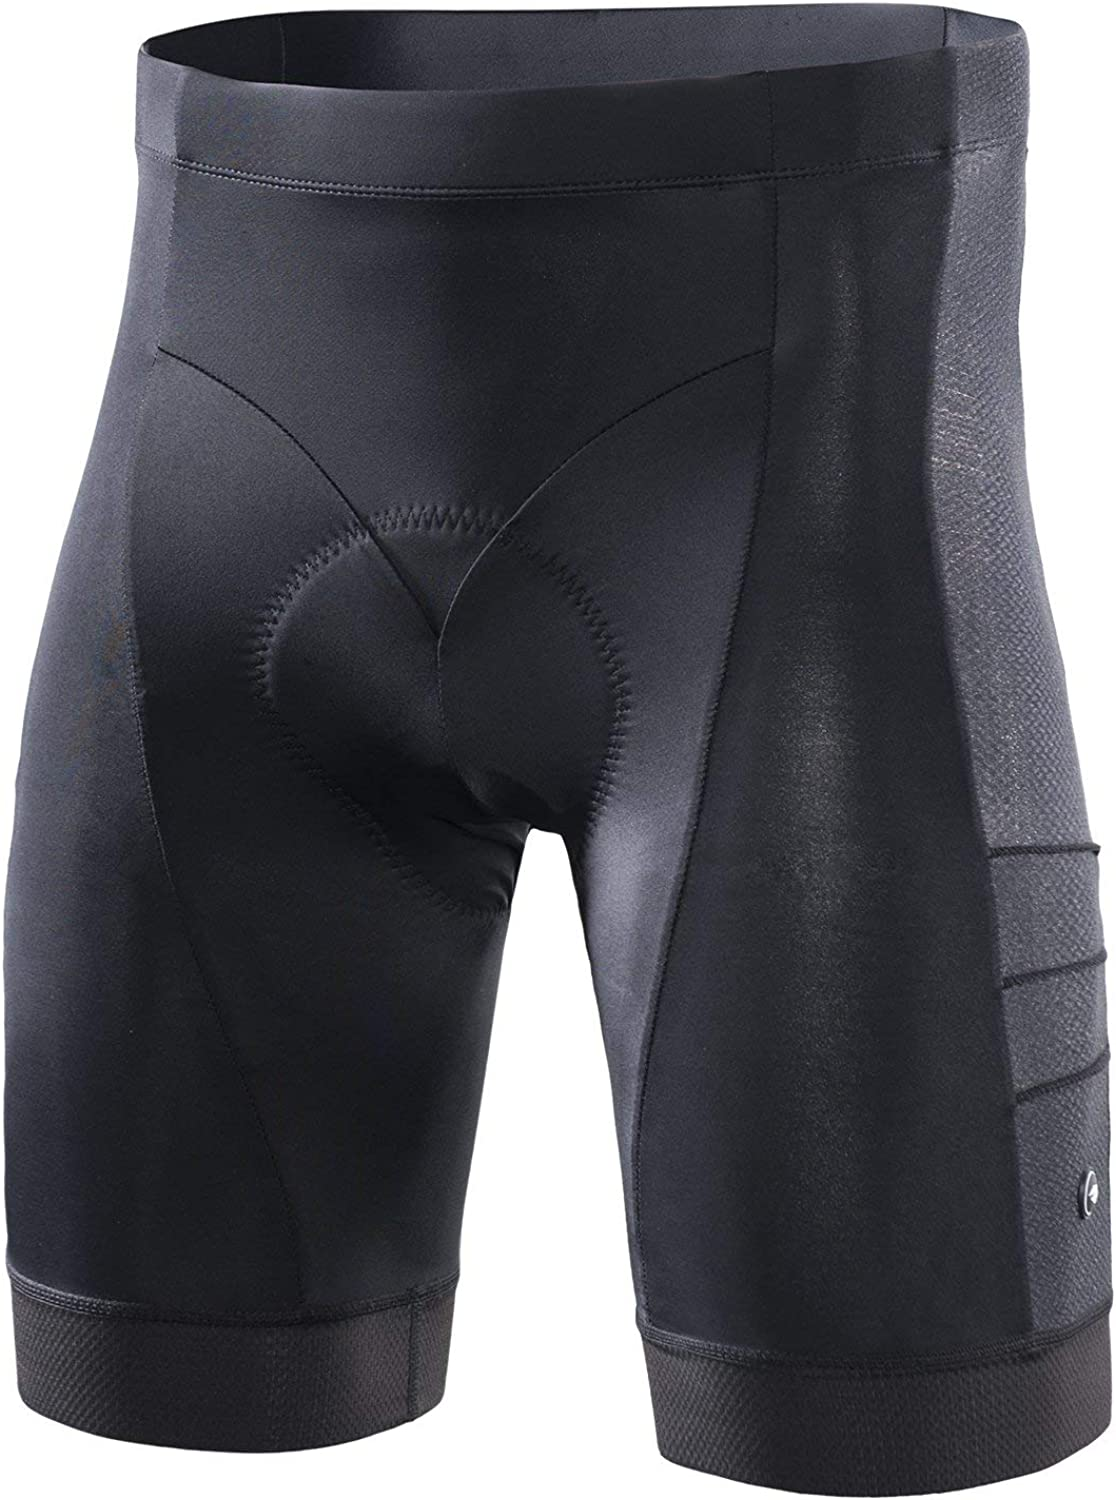 RION Men's Cycling Padded Shorts Bike Tights Bicycle Pants: Clothing